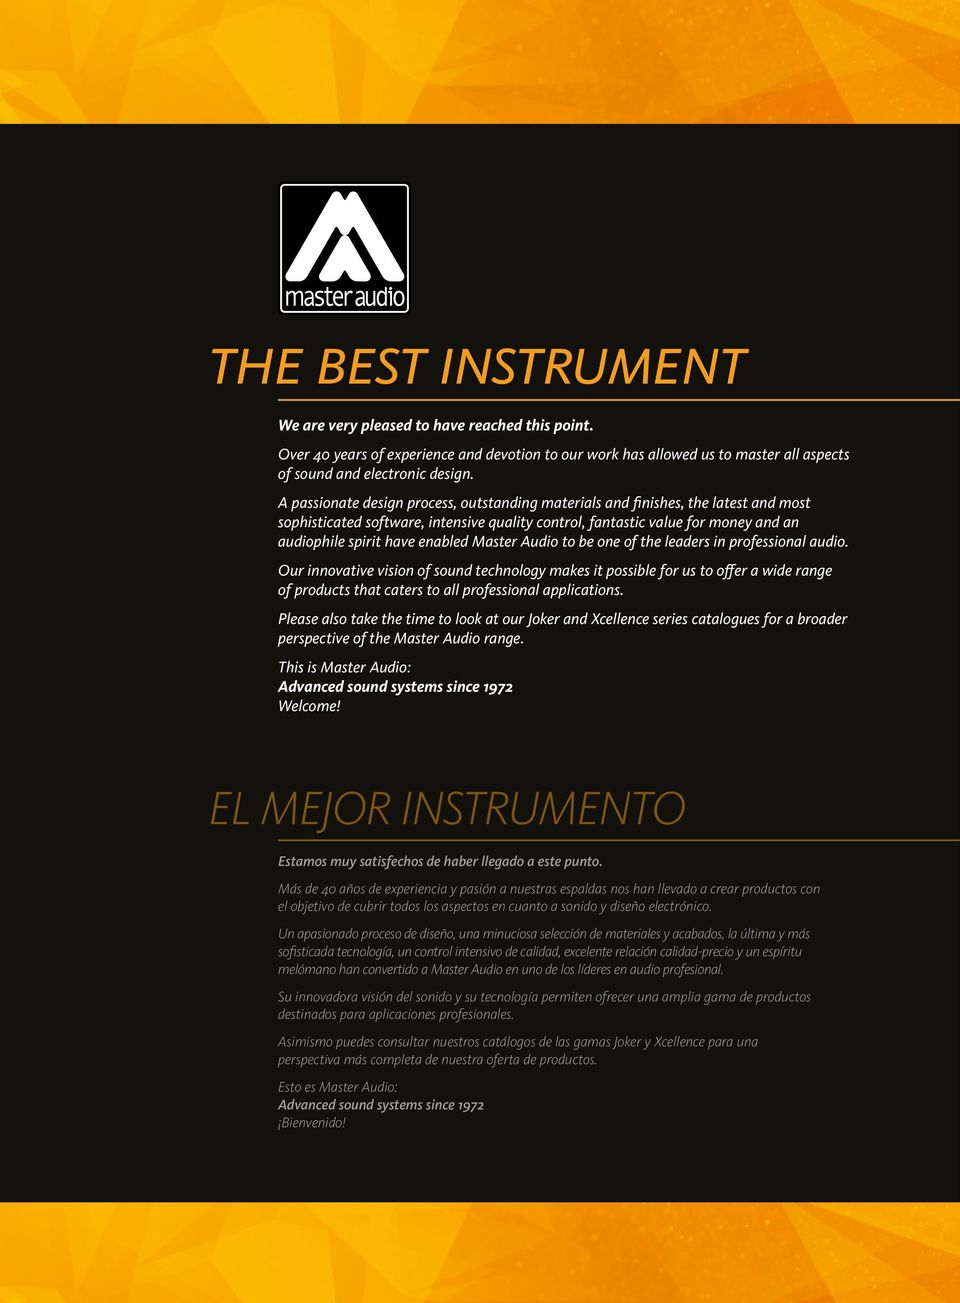 Master Audio to be one of the leaders in professional audio.